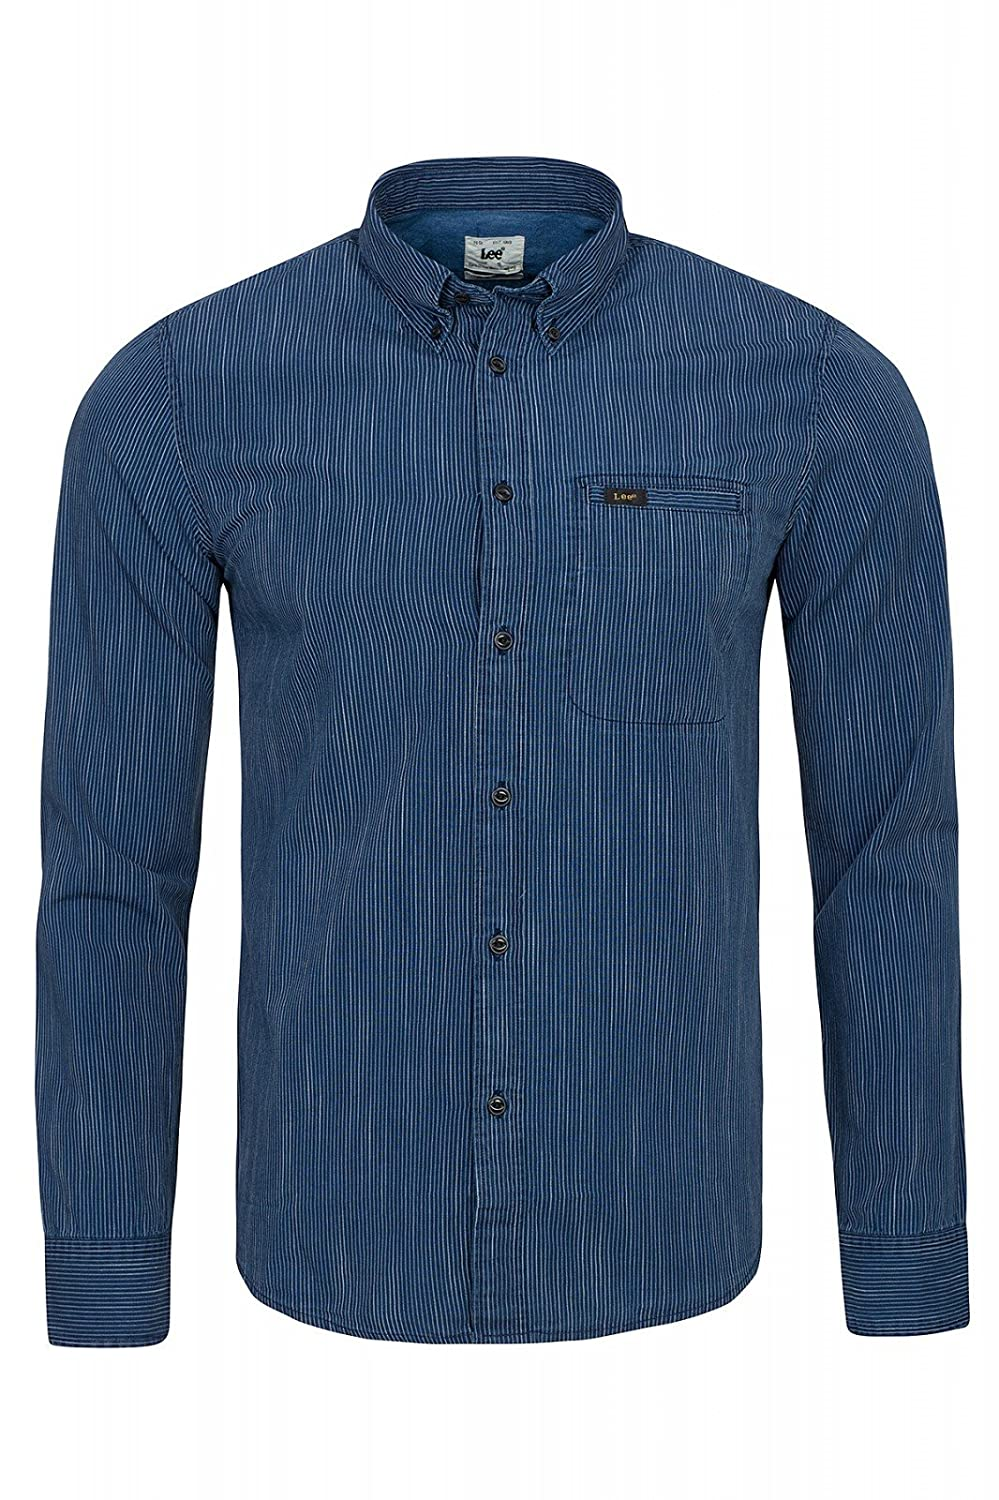 TALLA XL. Lee Button Down Camisa para Hombre